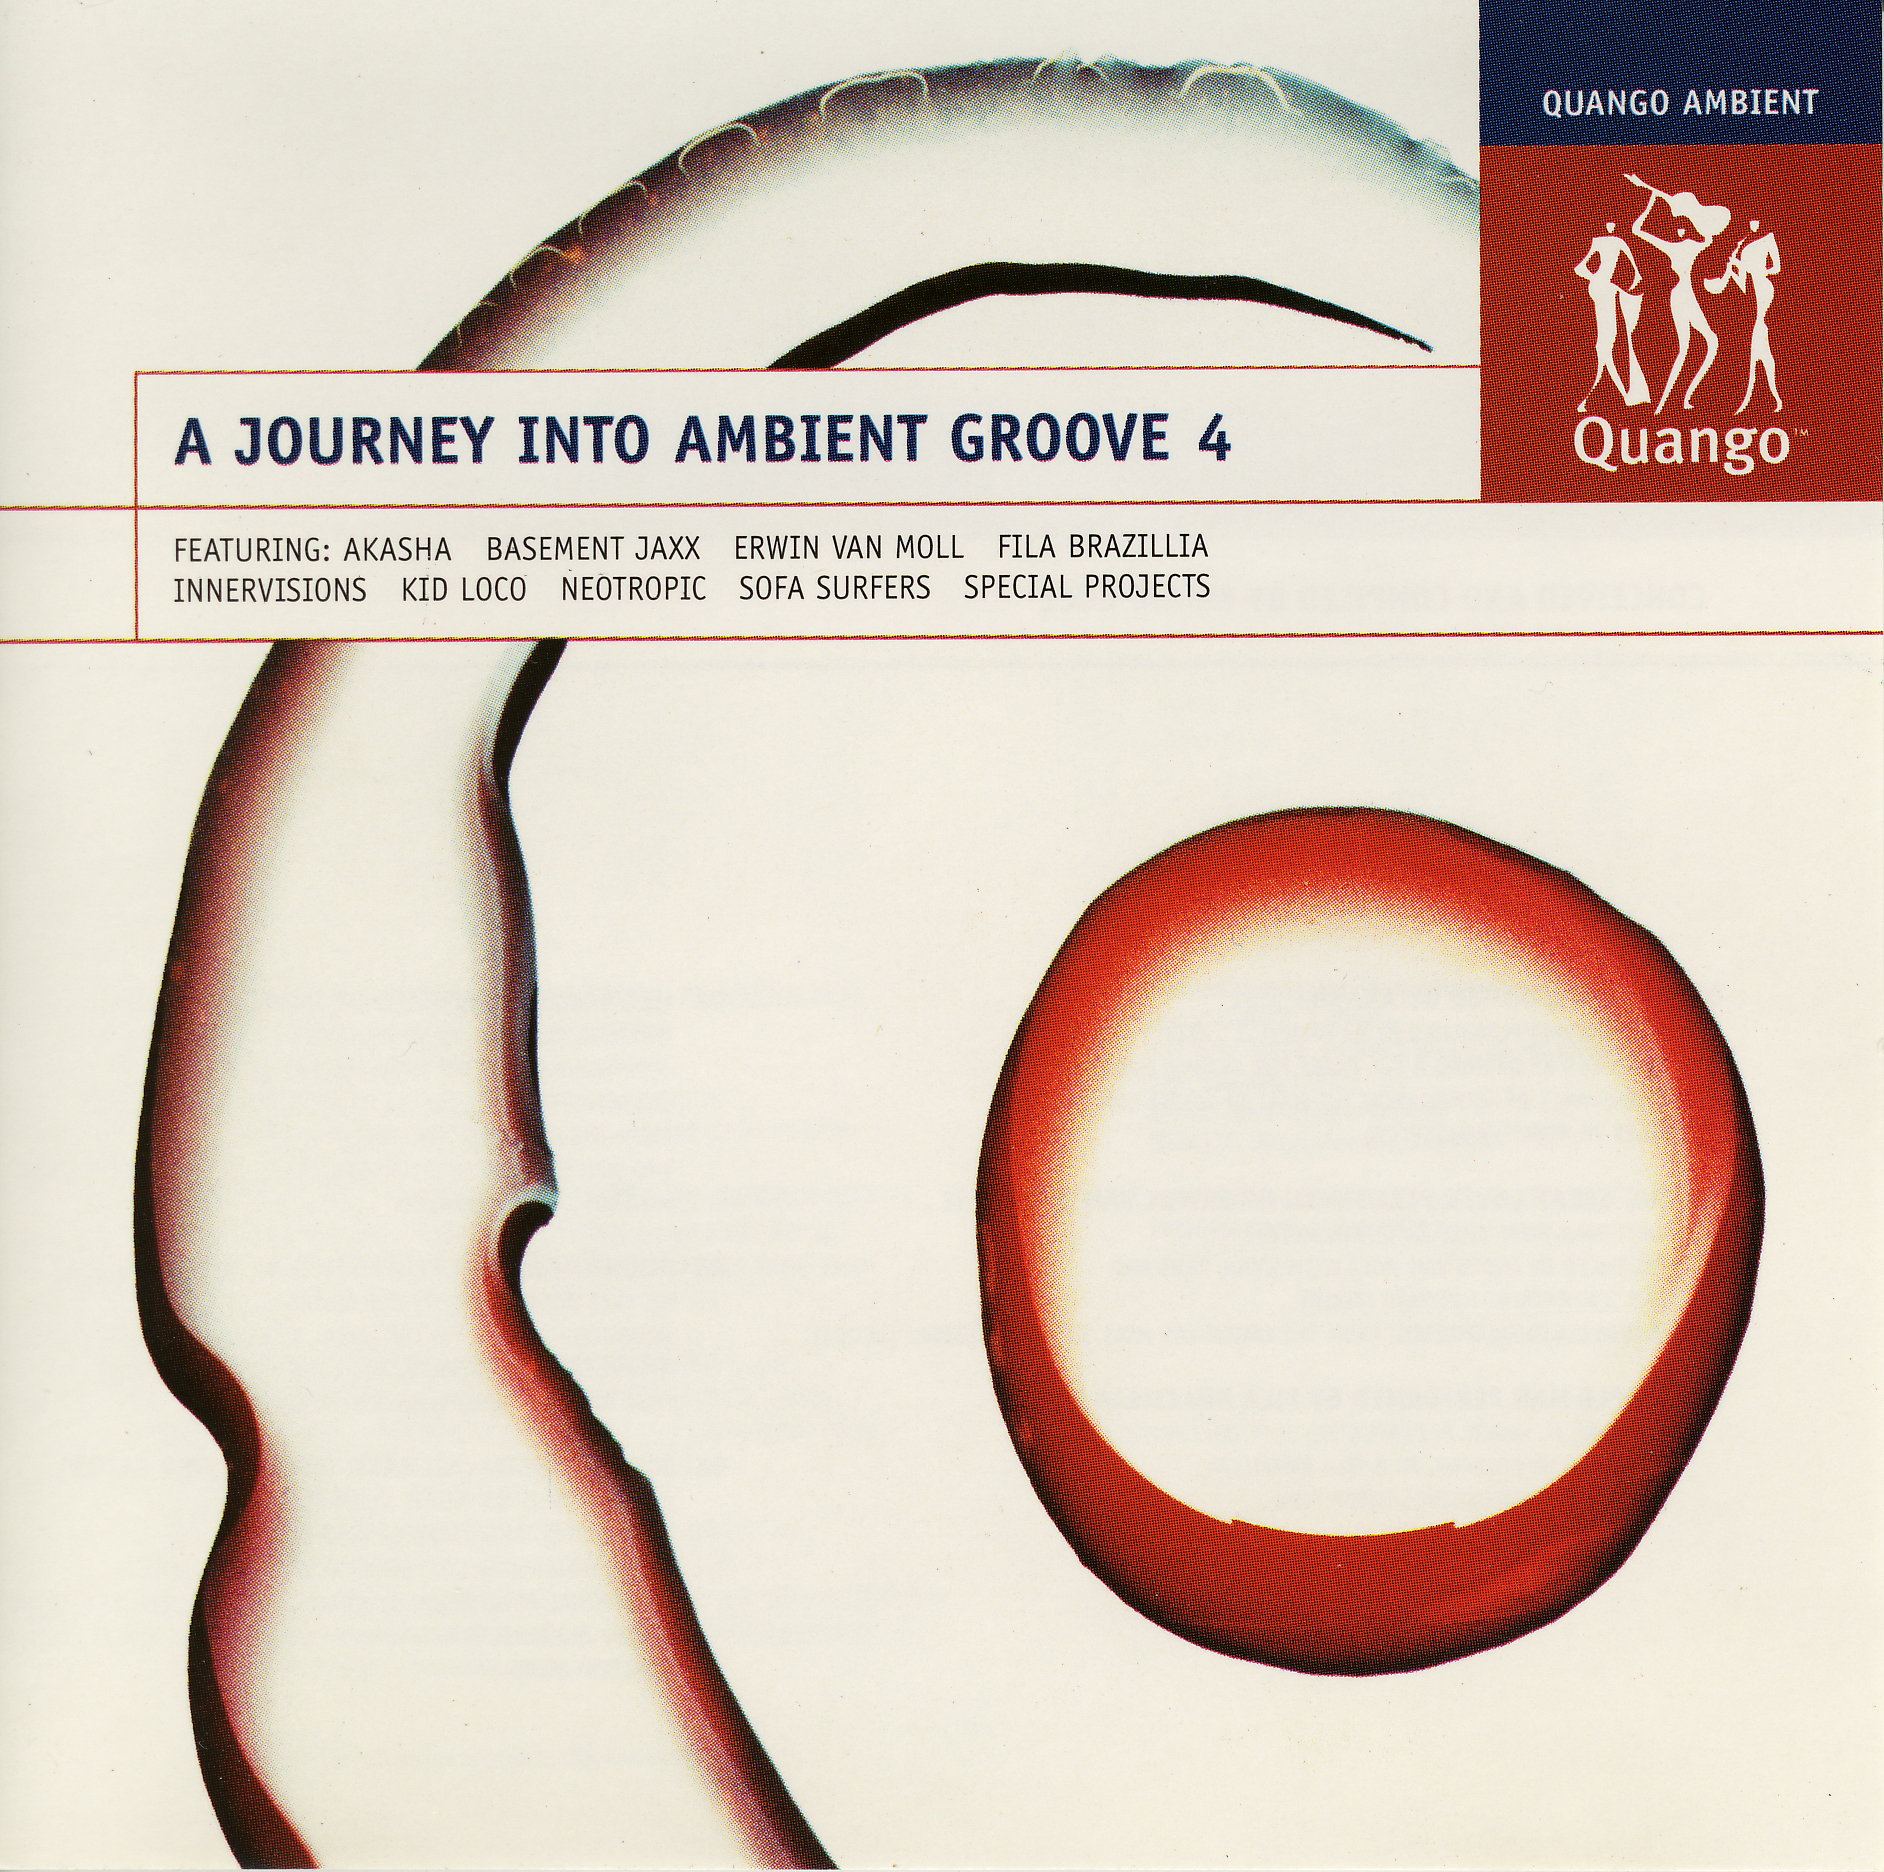 A-Journey-Into-Ambient-Groove-4.jpg